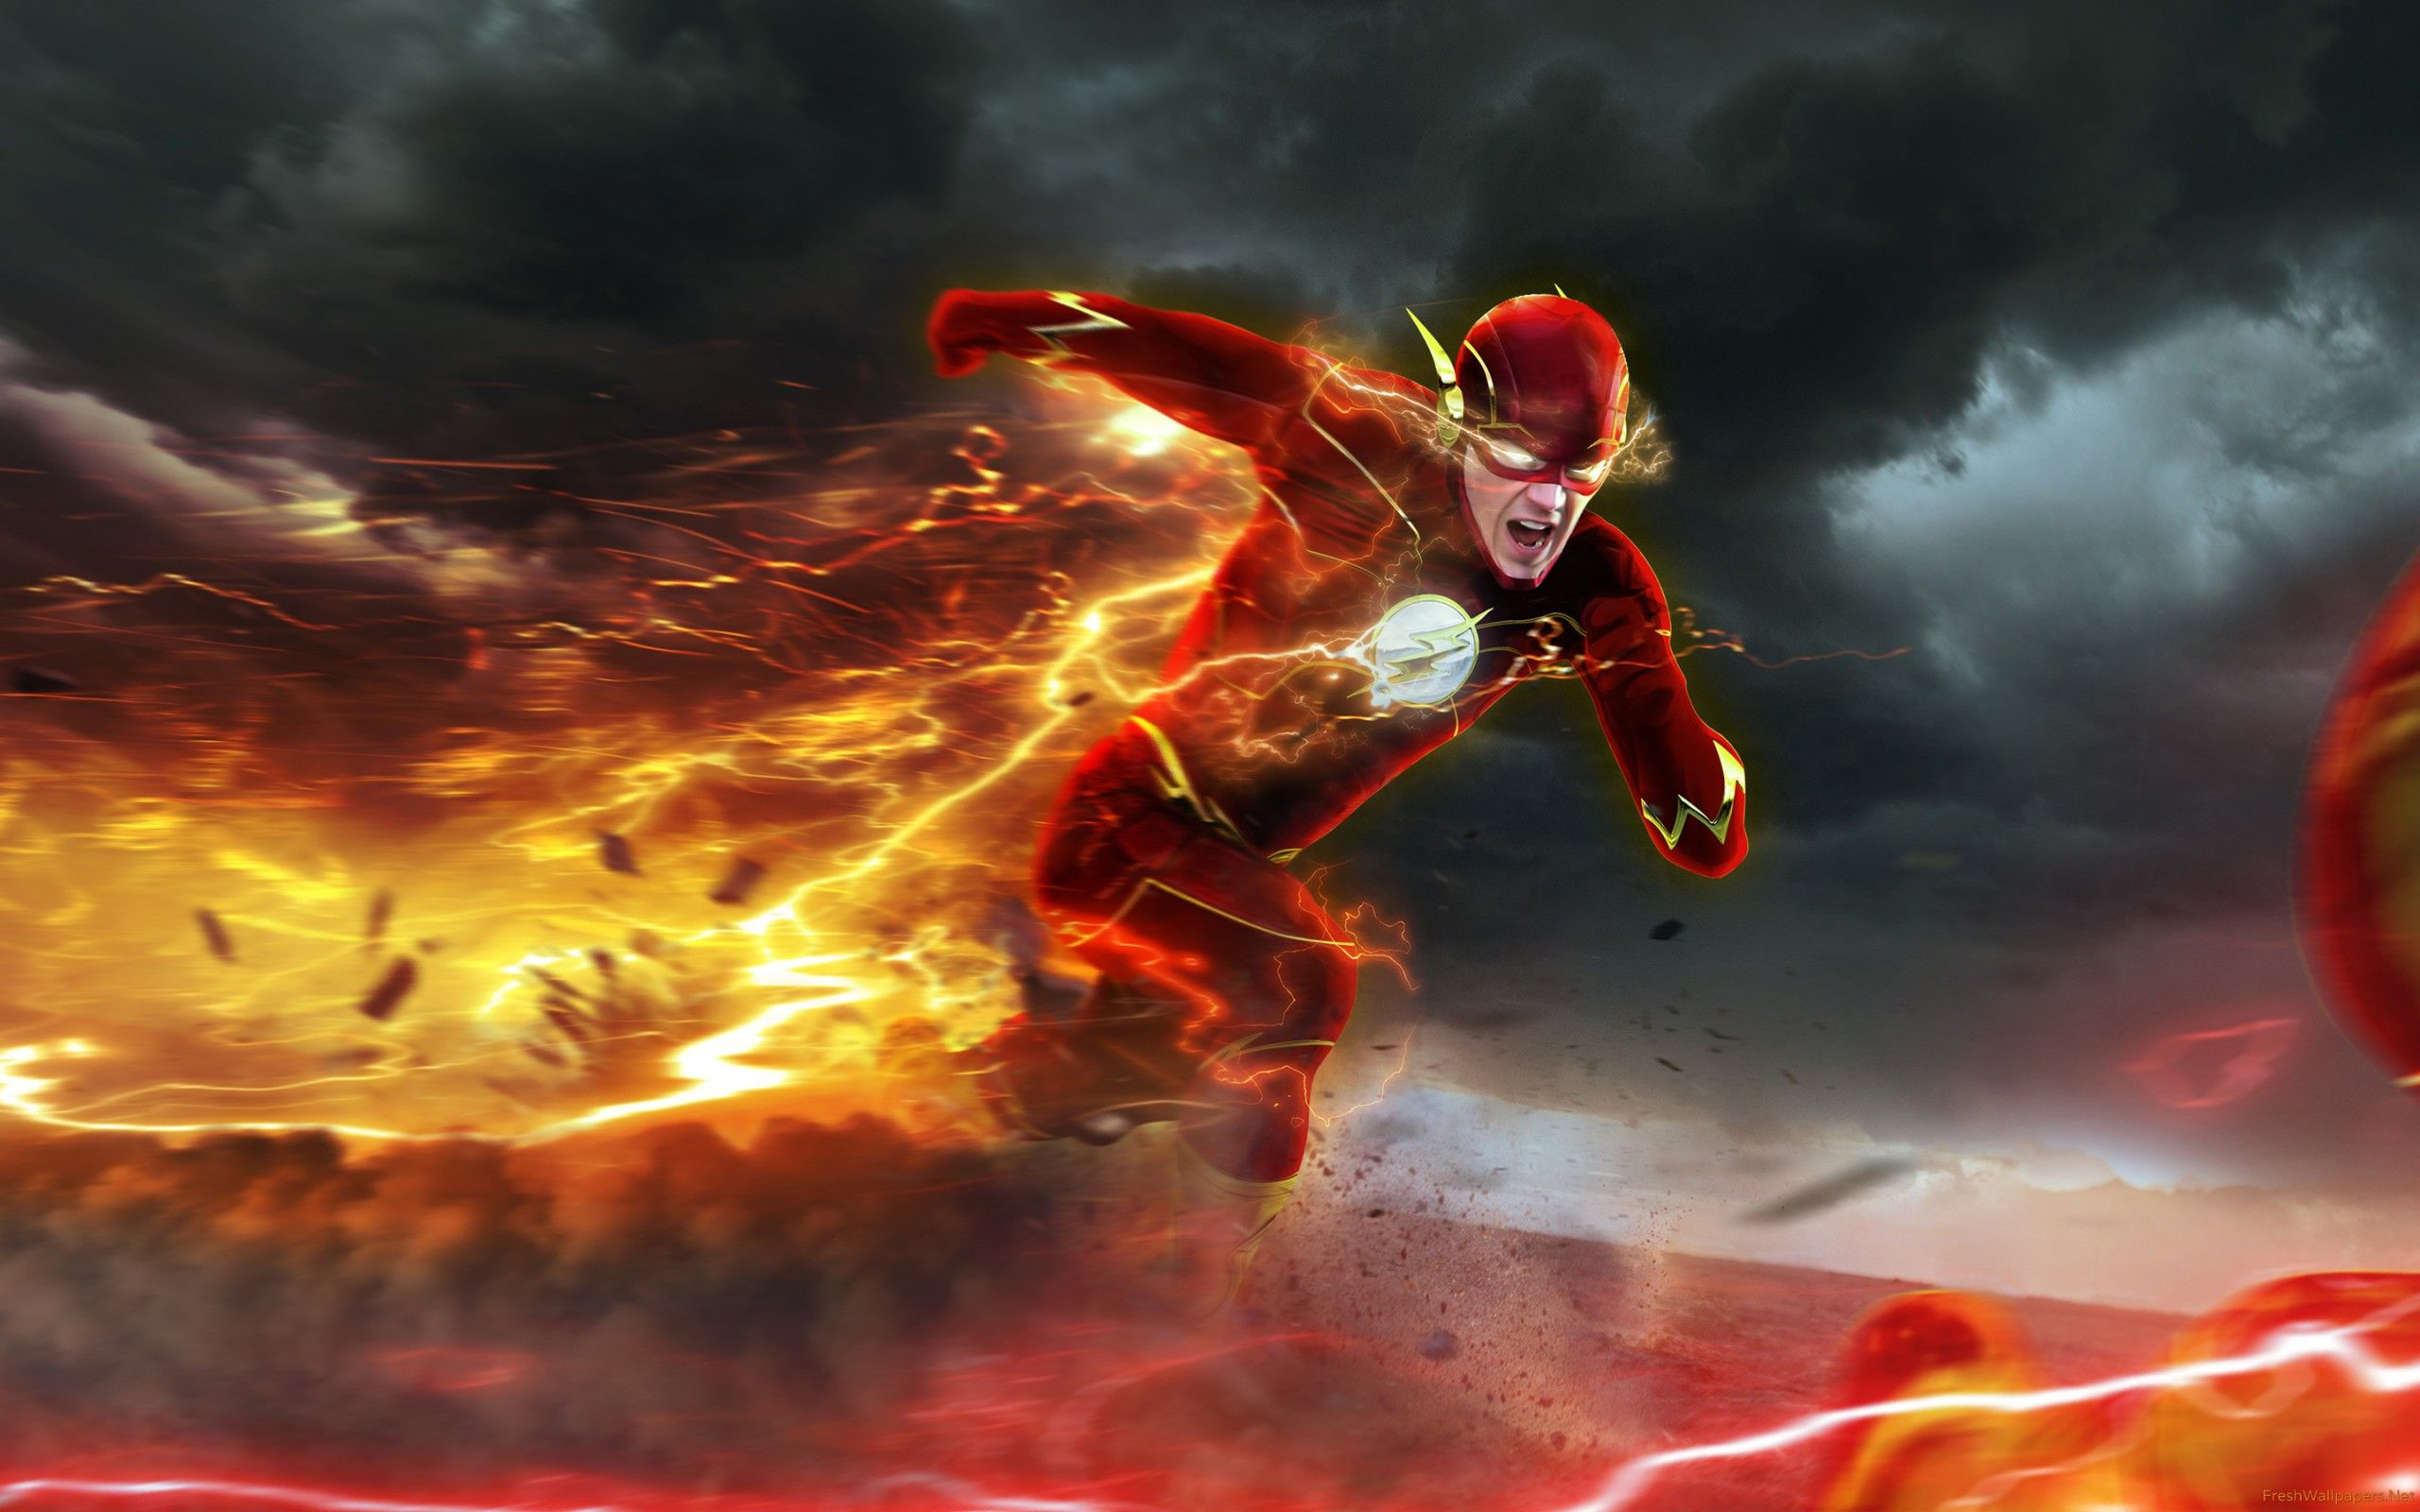 barry allen in the flash season 2 tv poster wallpapers  | the